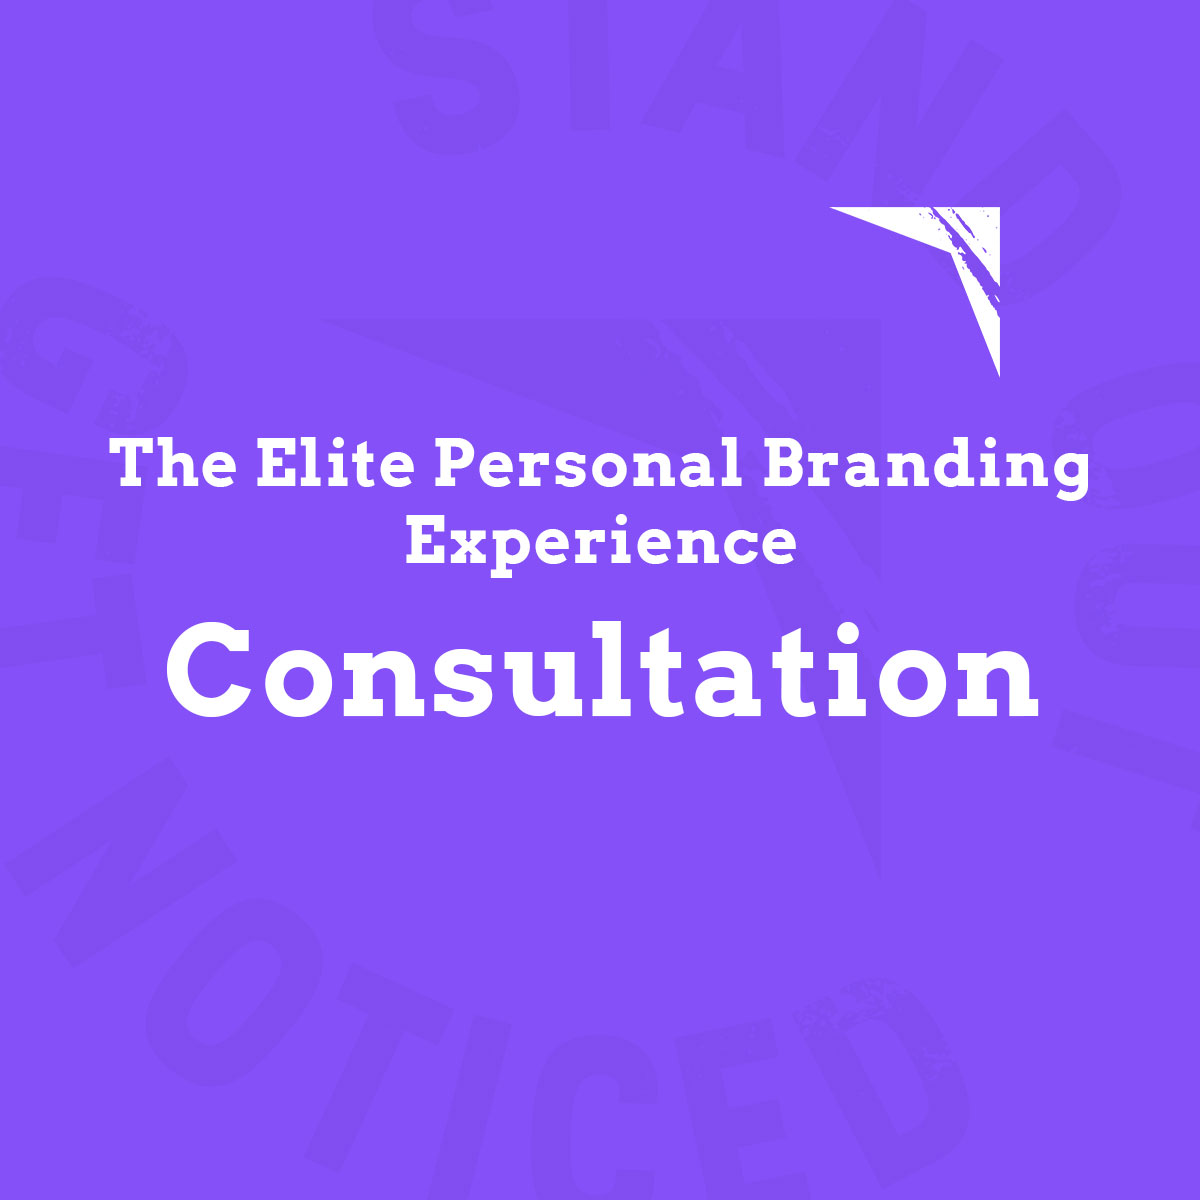 The Elite Personal Branding Experience Consultation